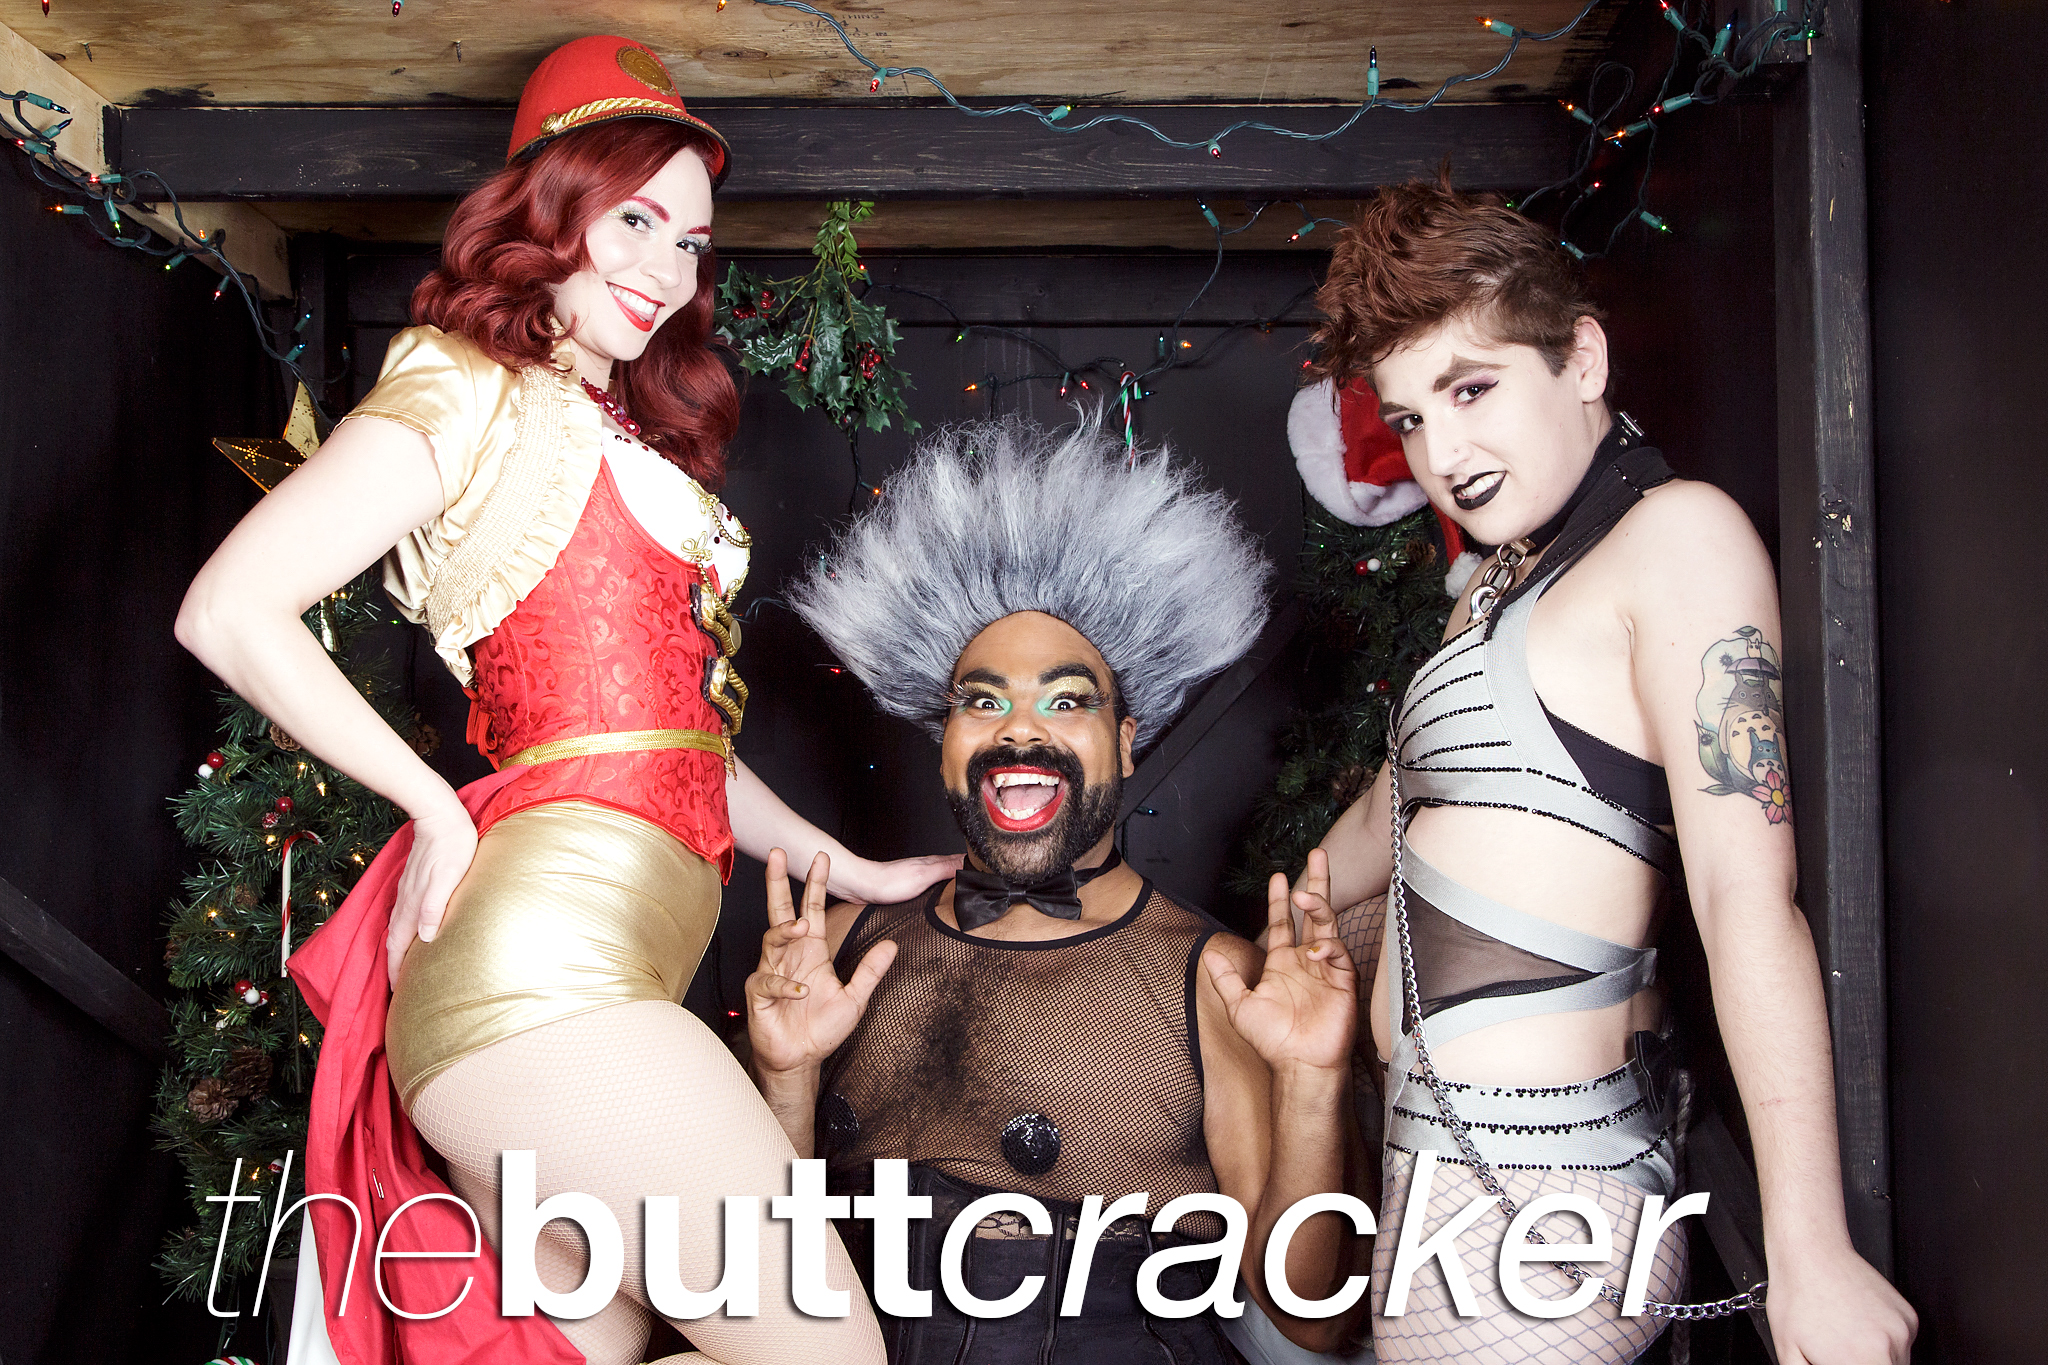 glitterguts portrait booth photos from buttcracker at the den theatre, chicago 2019